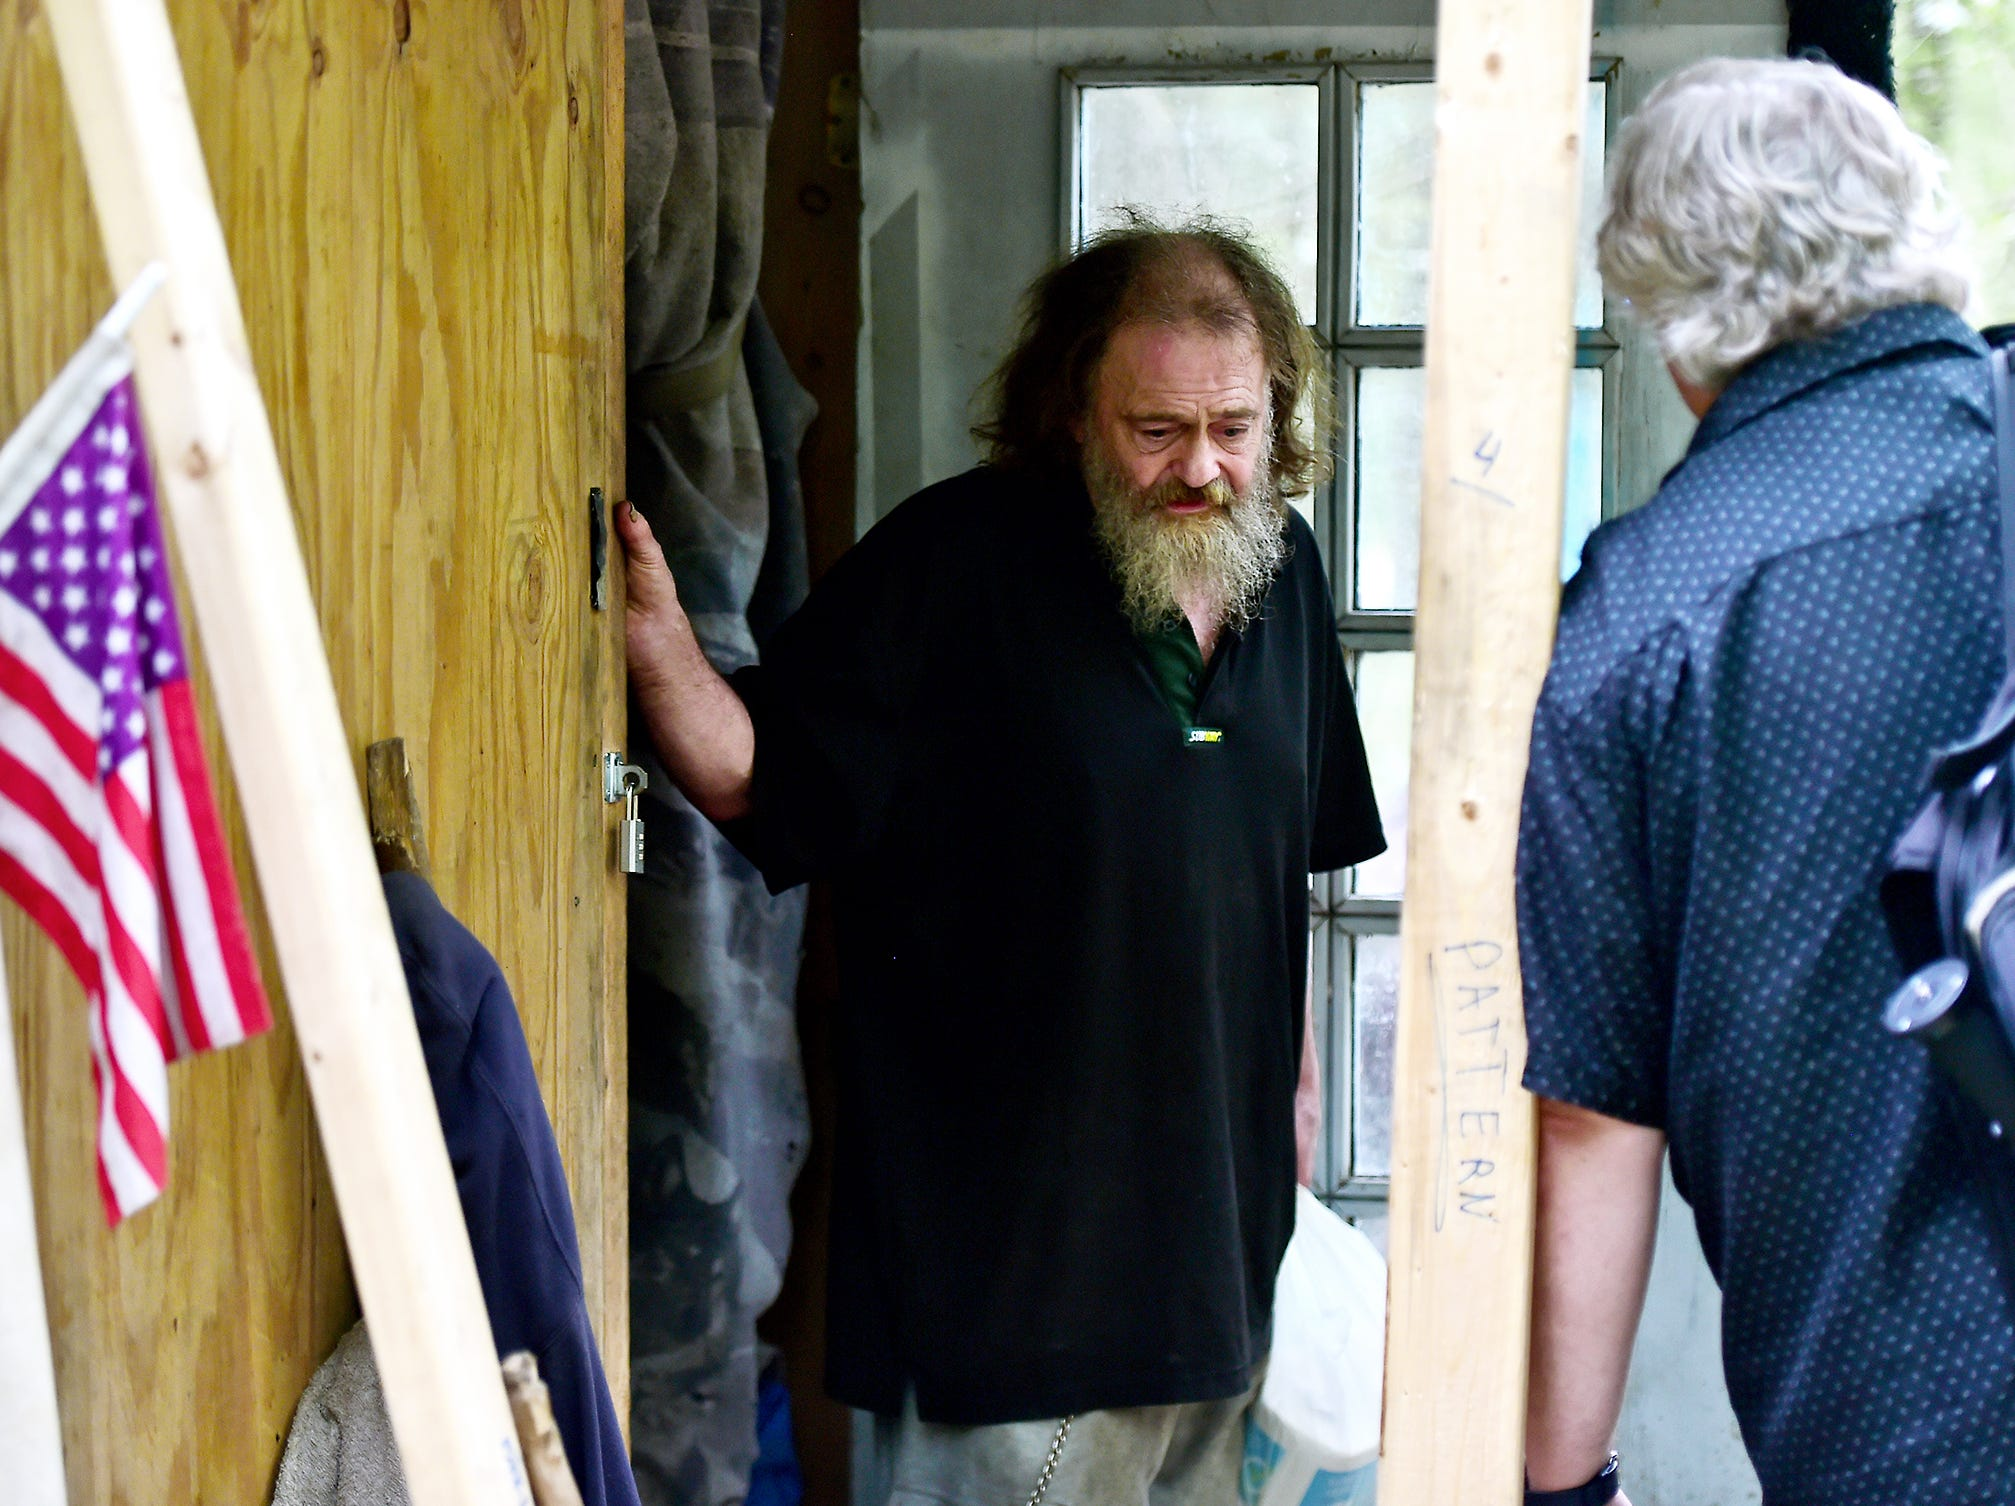 Mark Horvath, left, interviews Bill, who lives in The Jungle in Ithaca, on August 31, 2018. Horvath is the founder of Invisible People, an organization which seeks to raise awareness by empowering homeless people worldwide tell their stories.